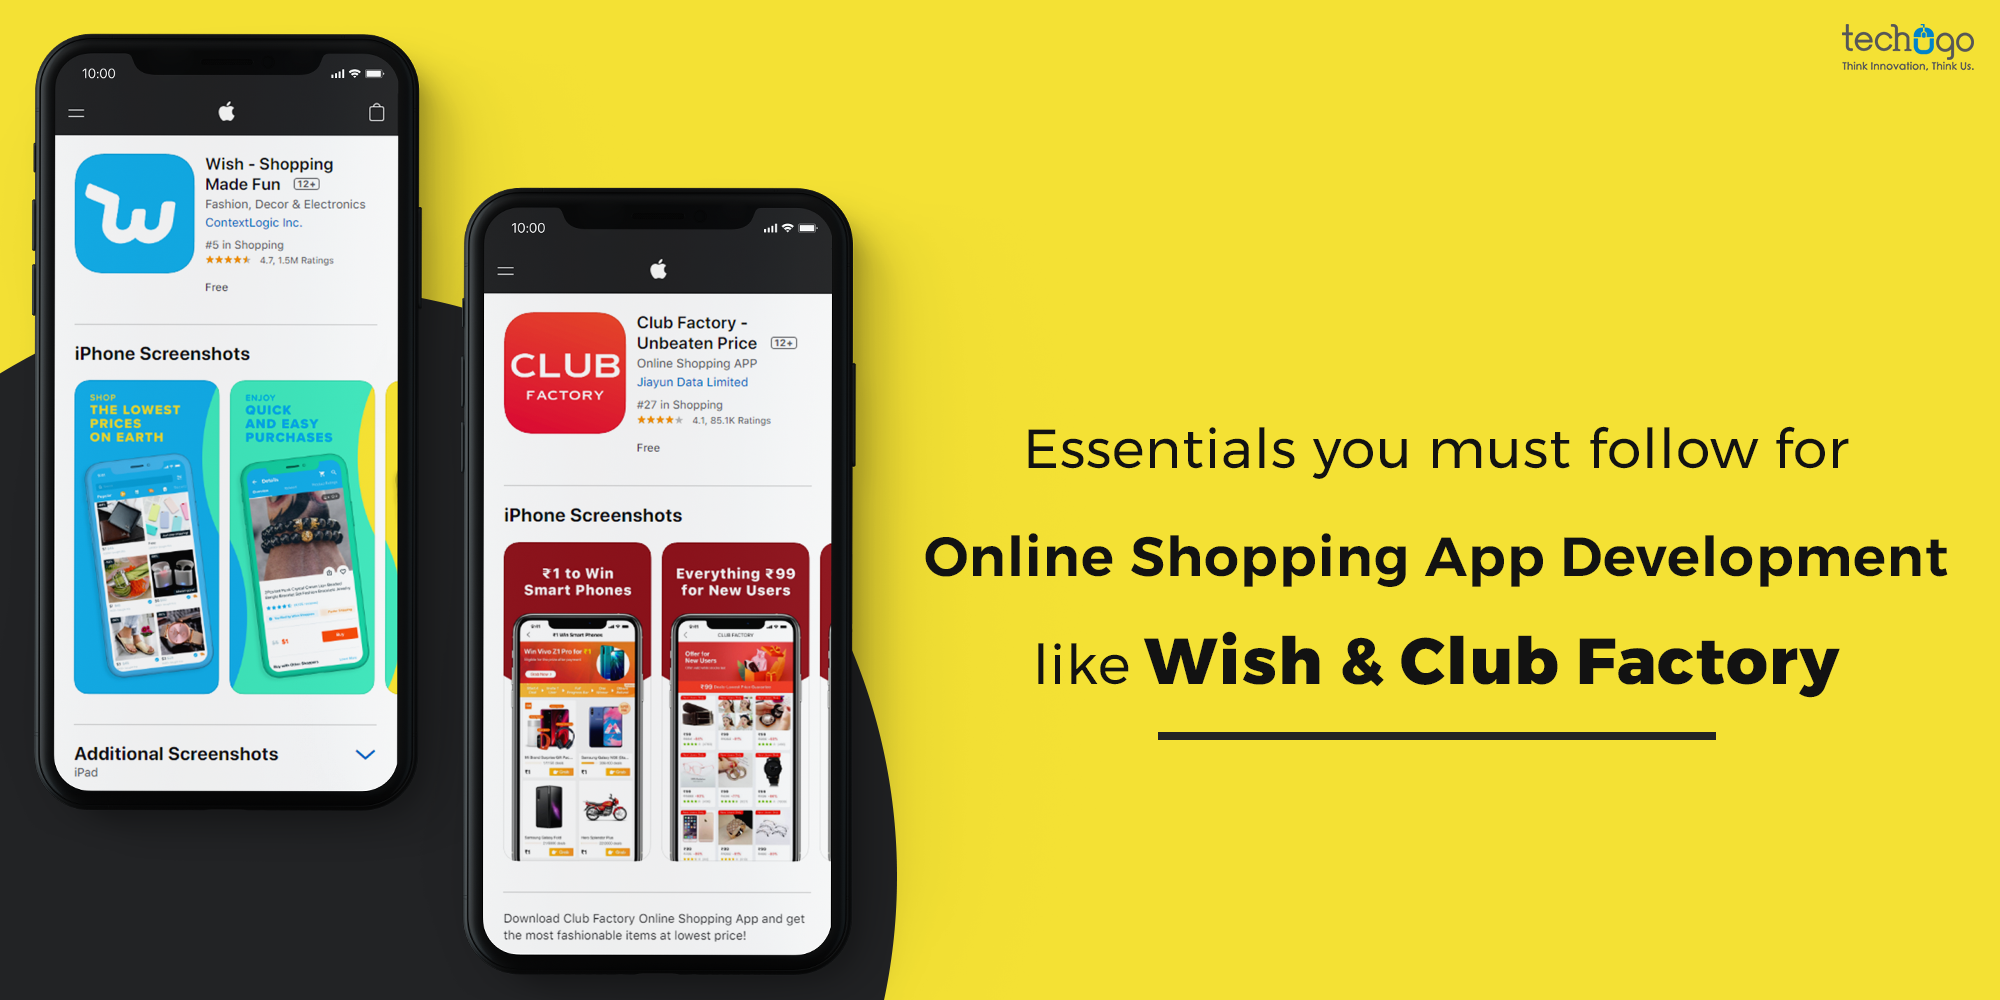 Essentials You Must Follow For Online Shopping App Development Like Wish & Club Factory